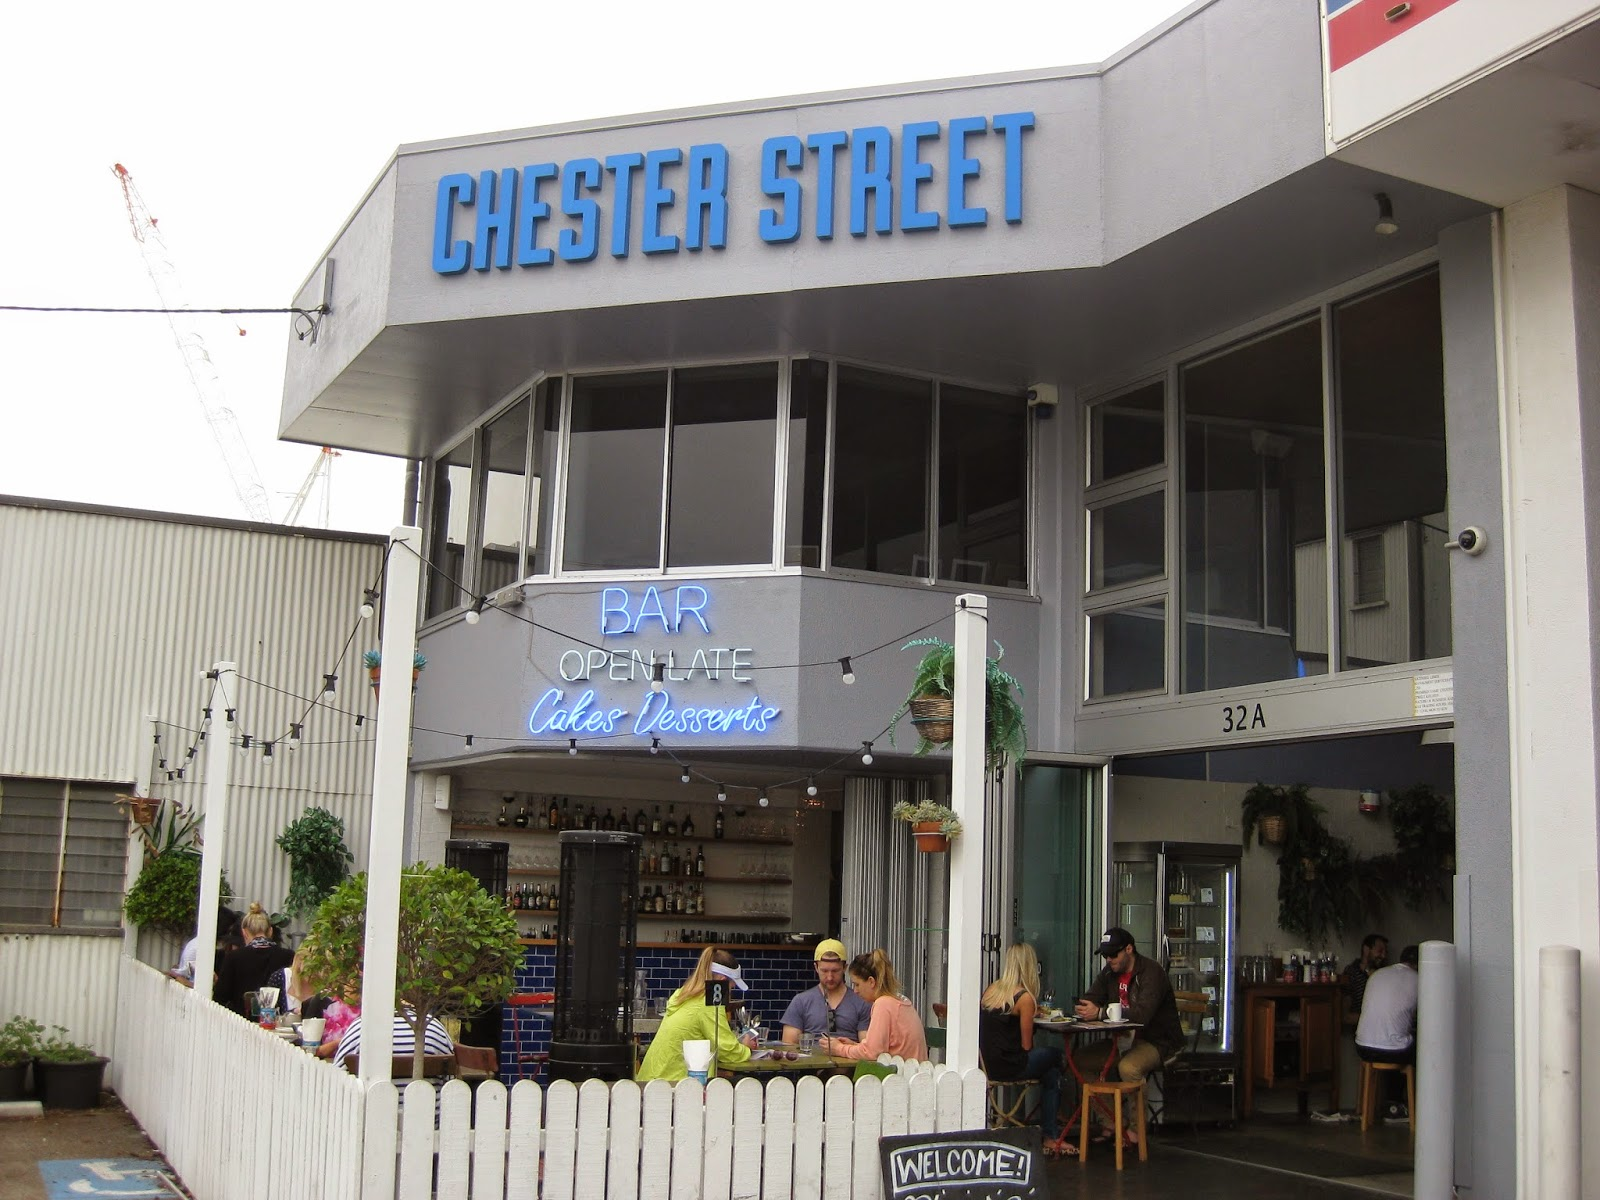 Cassie Cakes Review of Chester Street: Outside the restaurant